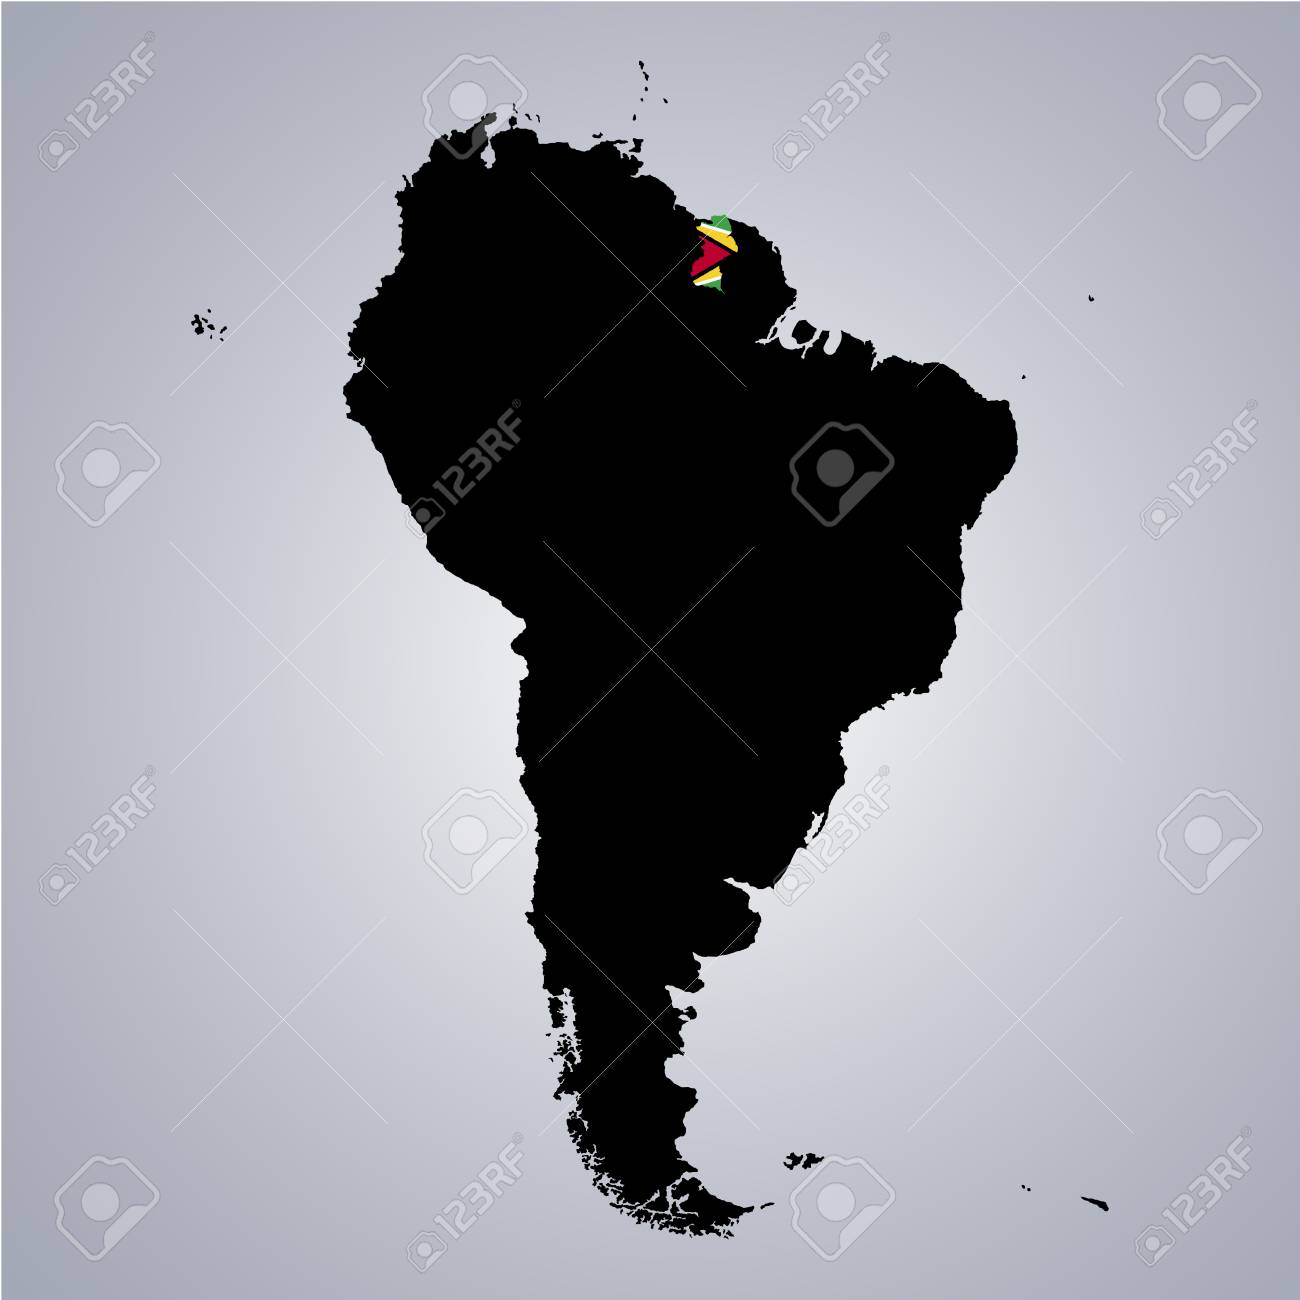 Territory and flag of guyana on south america map on grey background territory and flag of guyana on south america map on grey background stock vector 89266849 gumiabroncs Image collections